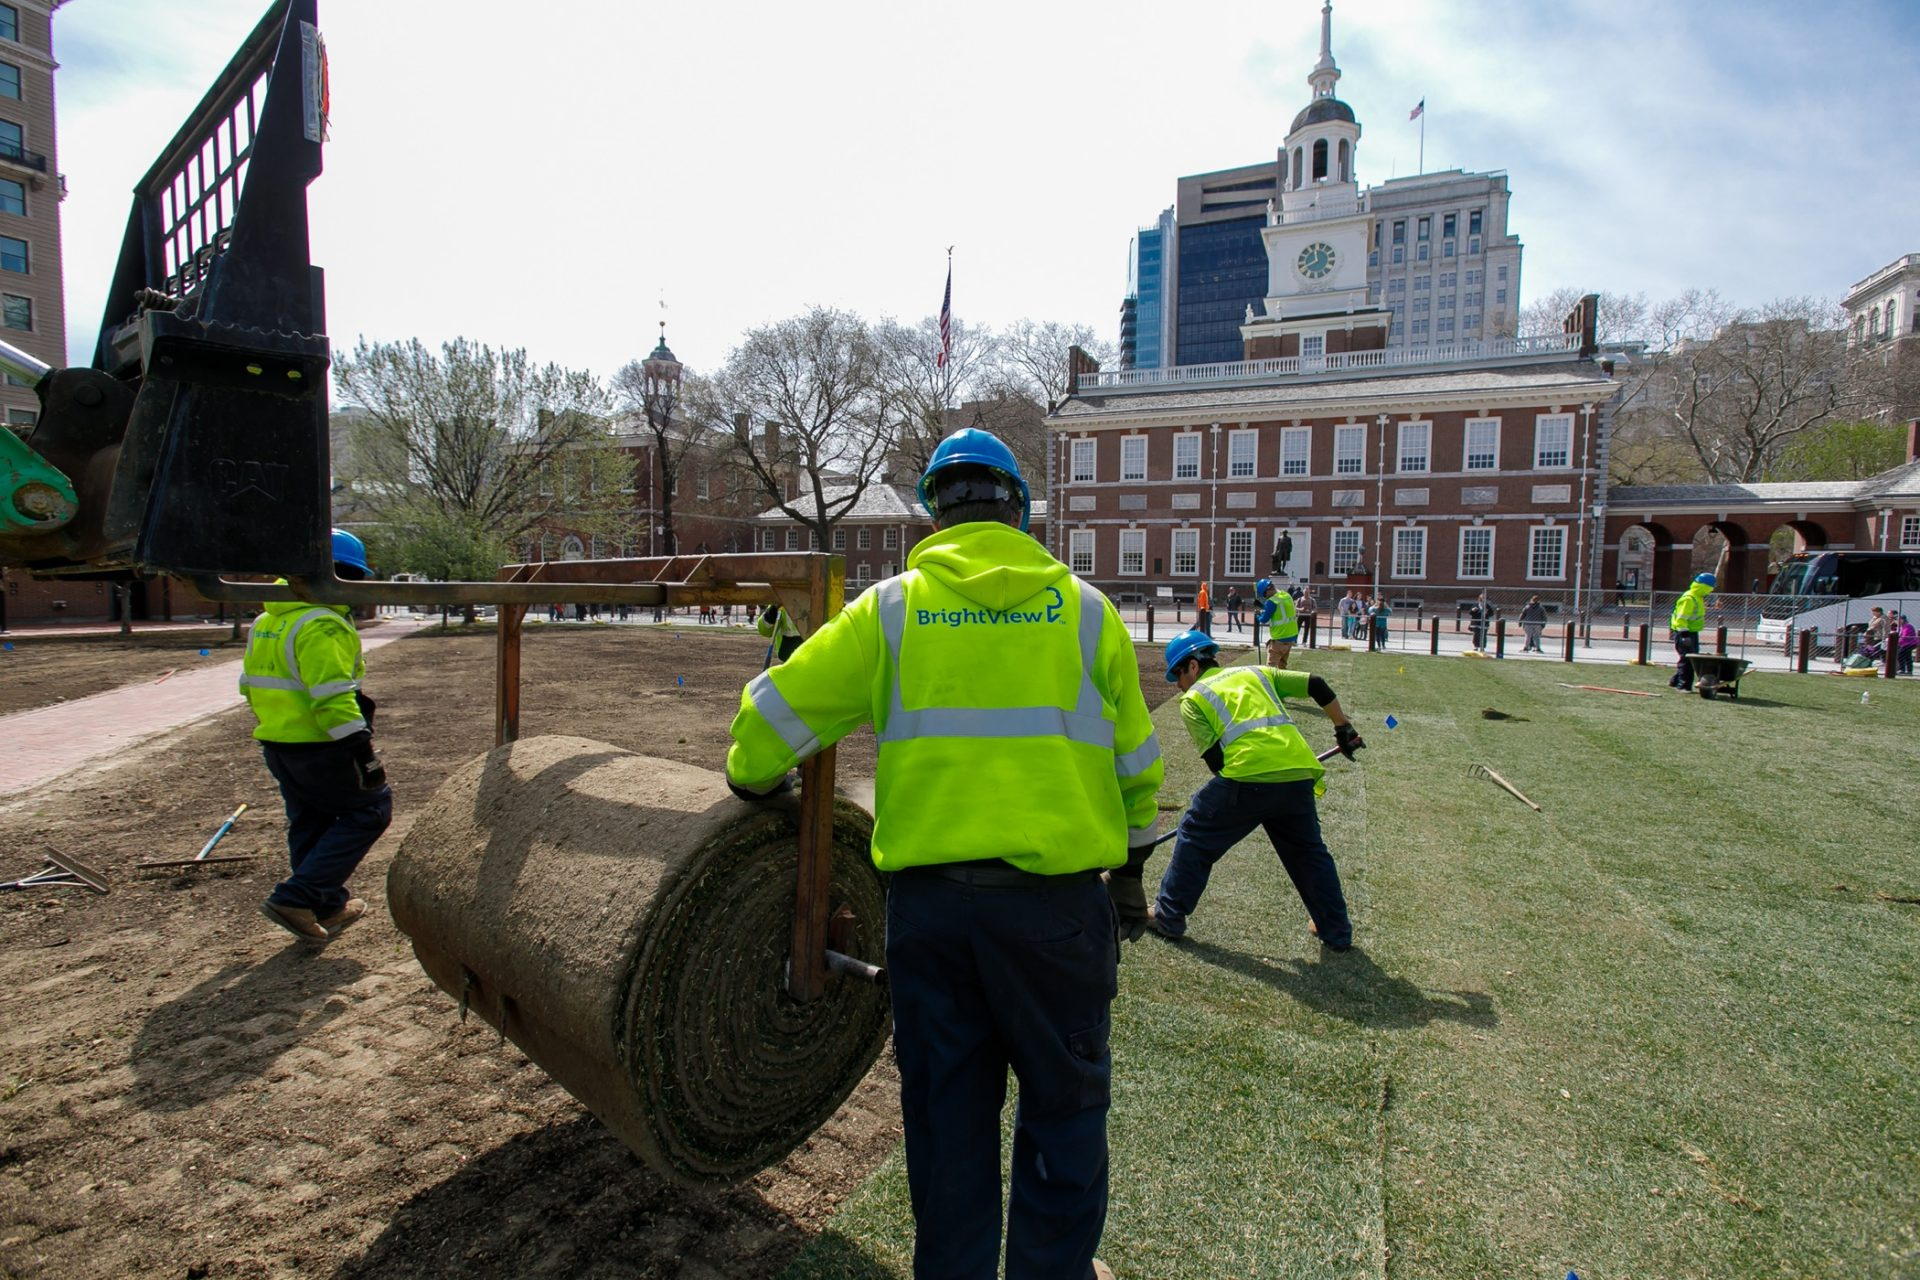 BrightView landscapers work on Independence Mall. Brightview has been the largest employer of H2B guest workers in the country for the last several years.